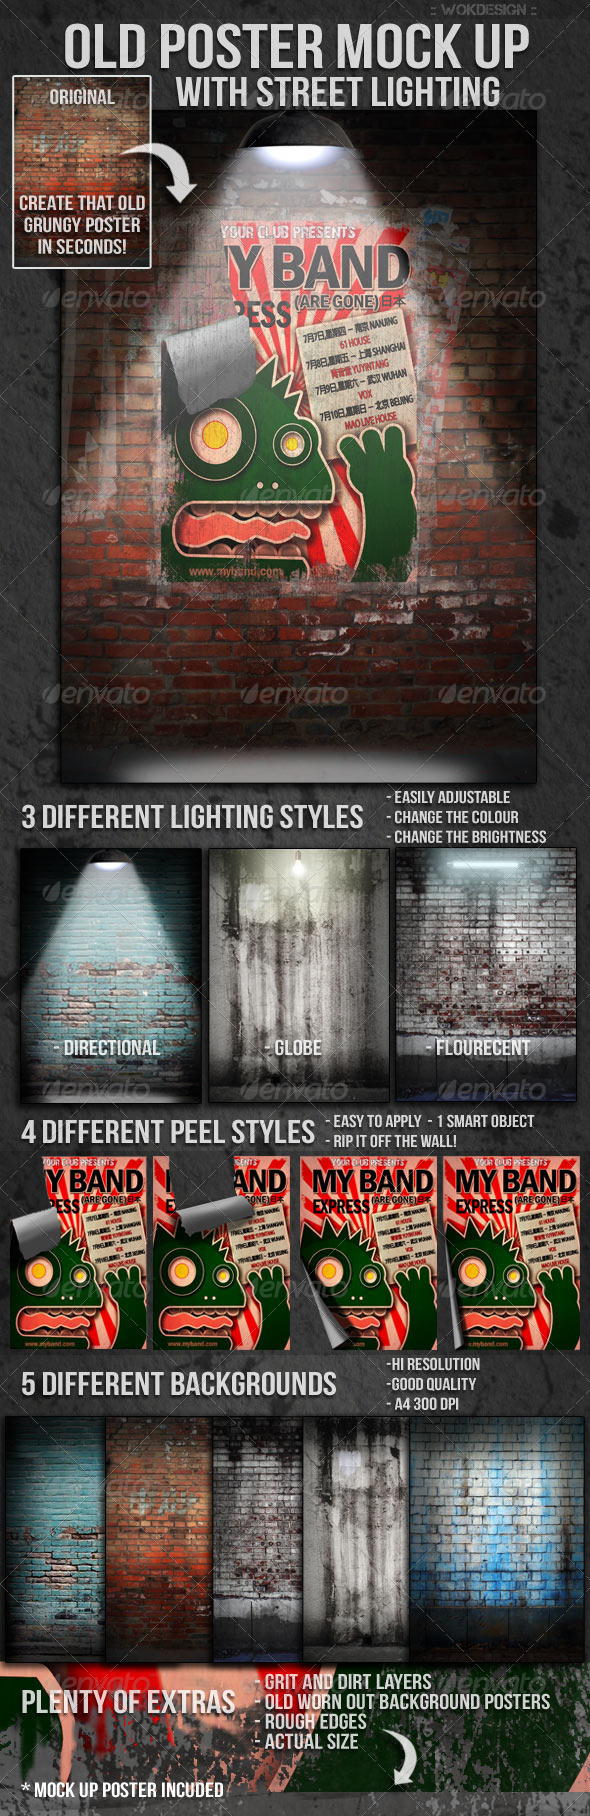 Old Poster Mock Up with Street Lighting - Posters Print